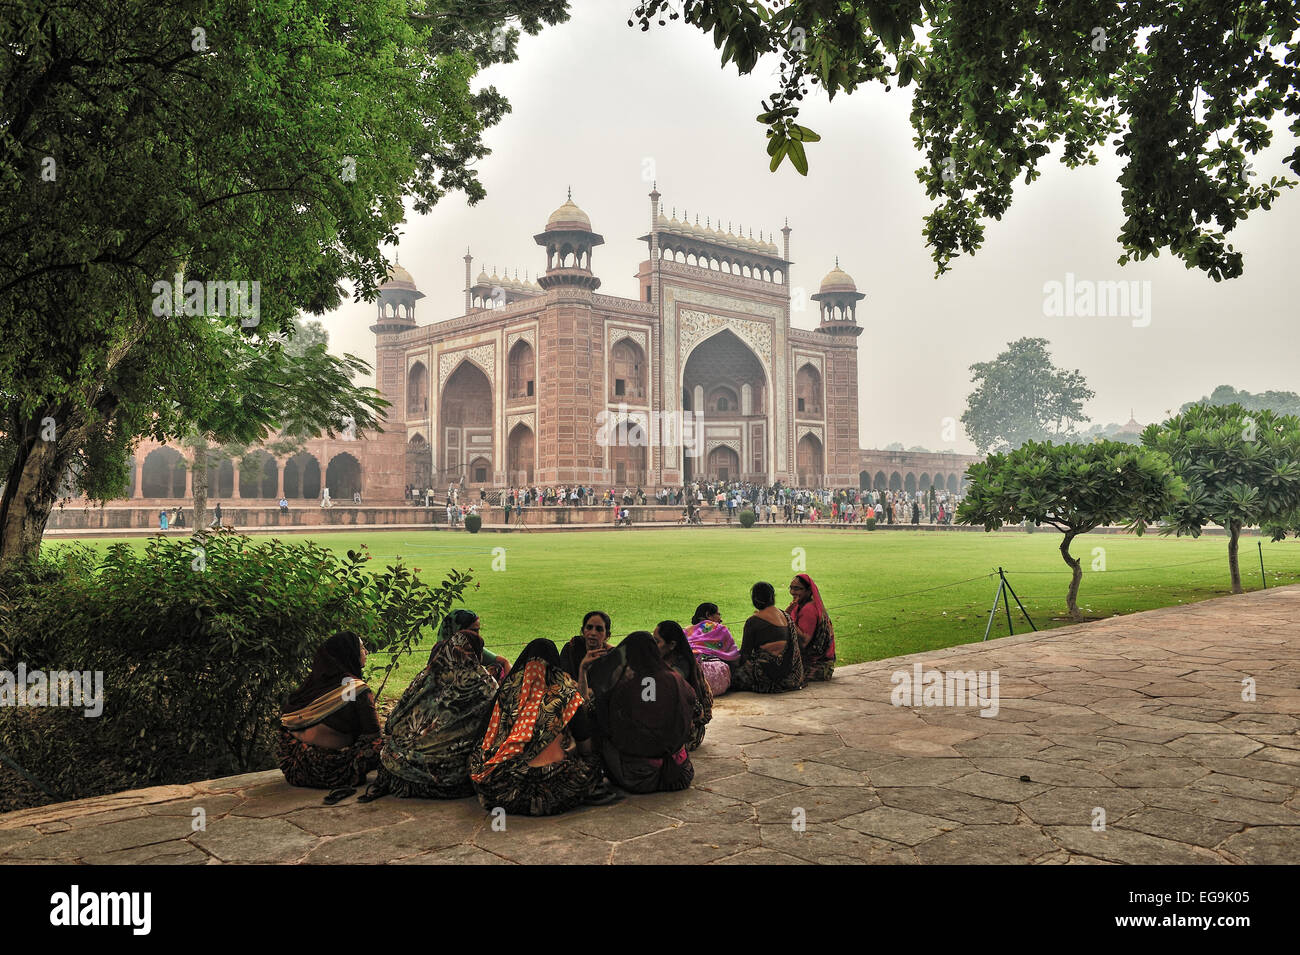 The main gateway (darwaza) is a monumental structure built primarily of marble which is reminiscent of Mughal architecture - Stock Image